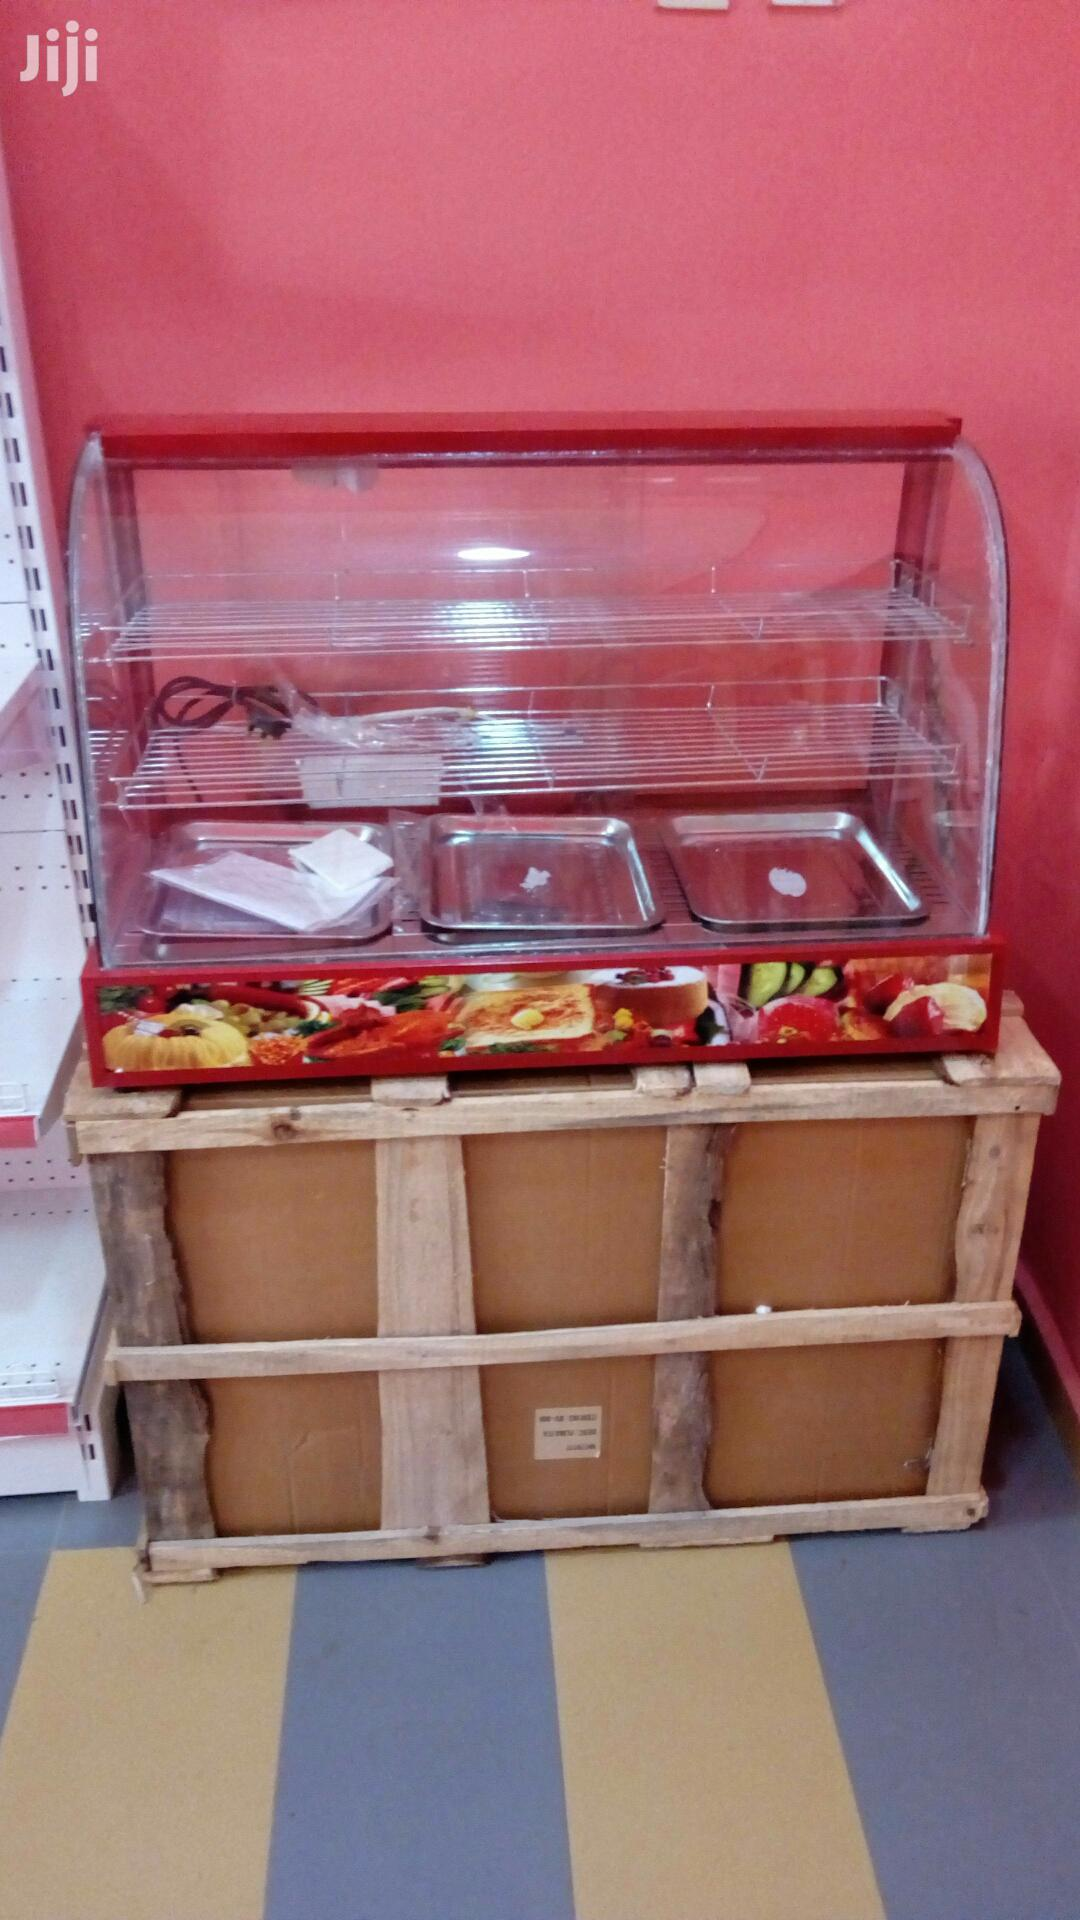 3 Layers Snacks Warming Showcase | Restaurant & Catering Equipment for sale in Kaura, Abuja (FCT) State, Nigeria